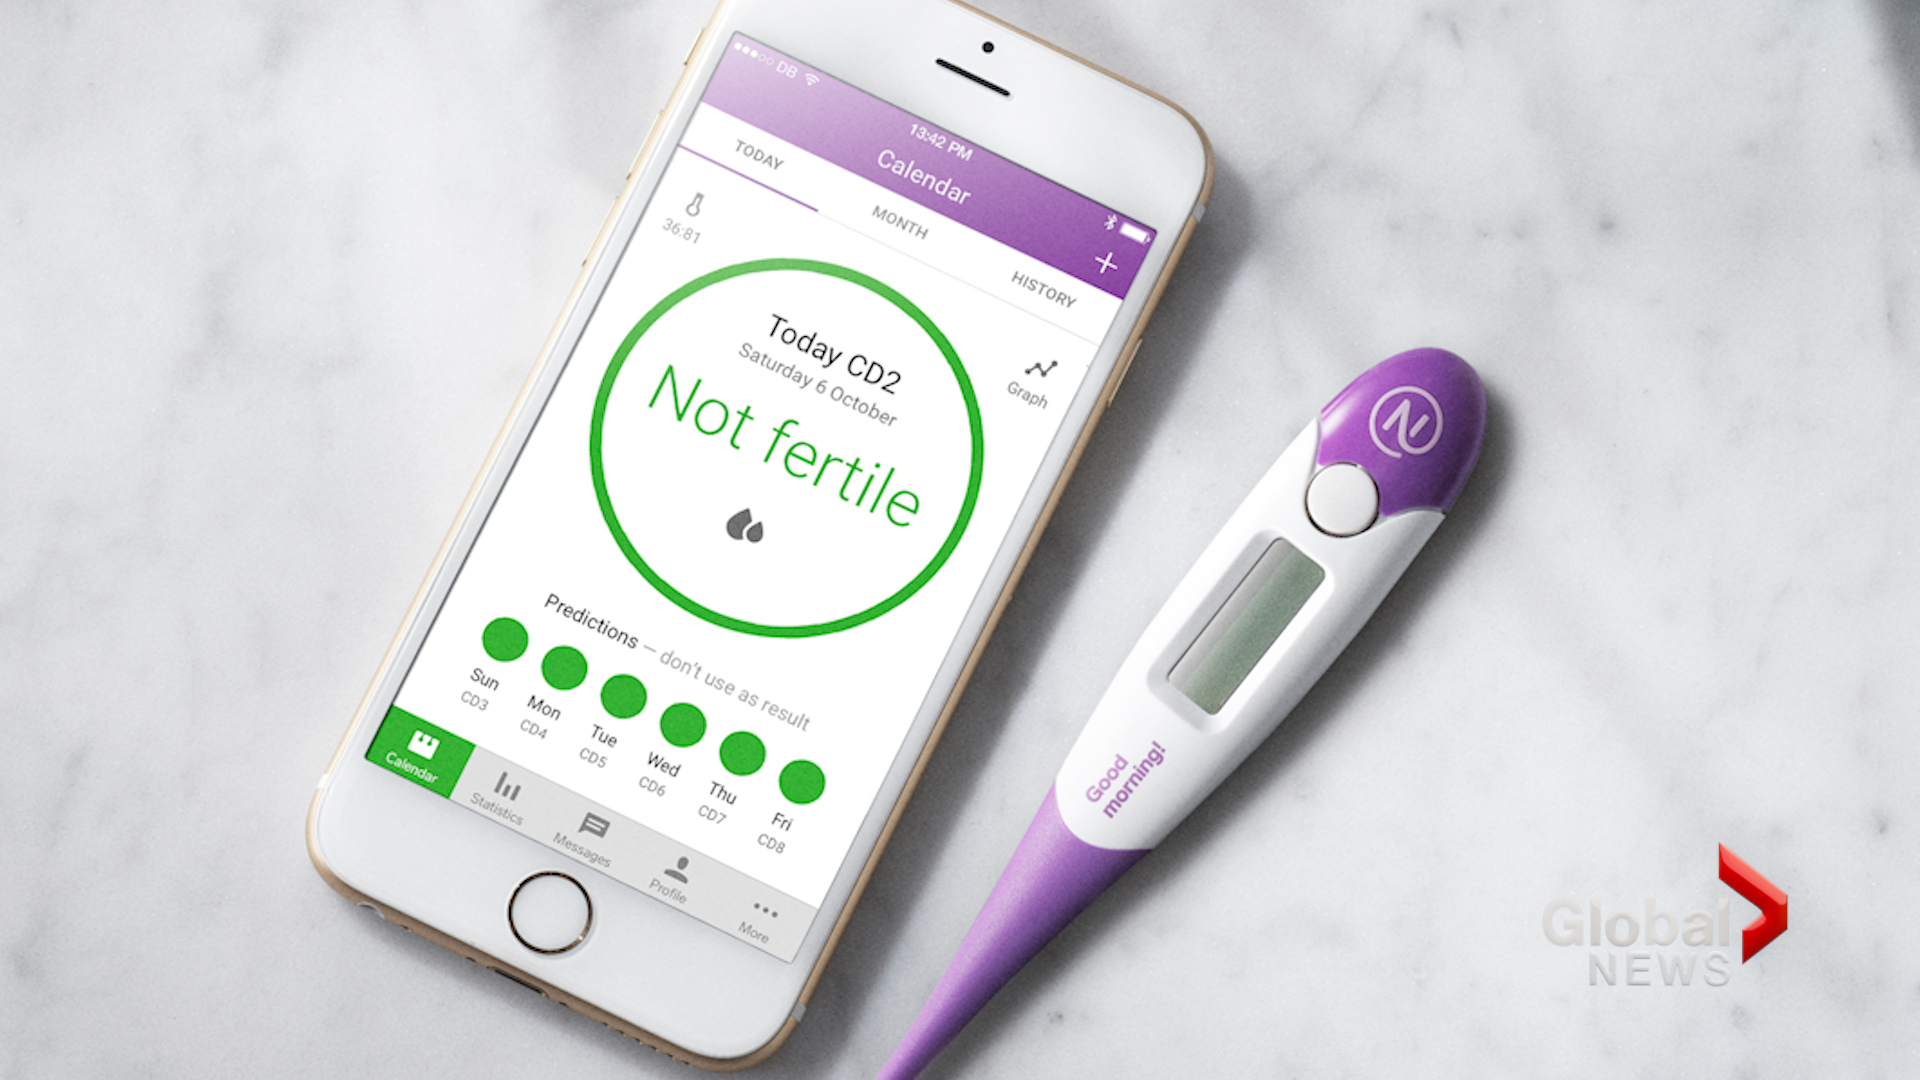 Birth Control App Blamed For Unwanted Pregnancies, Abortions